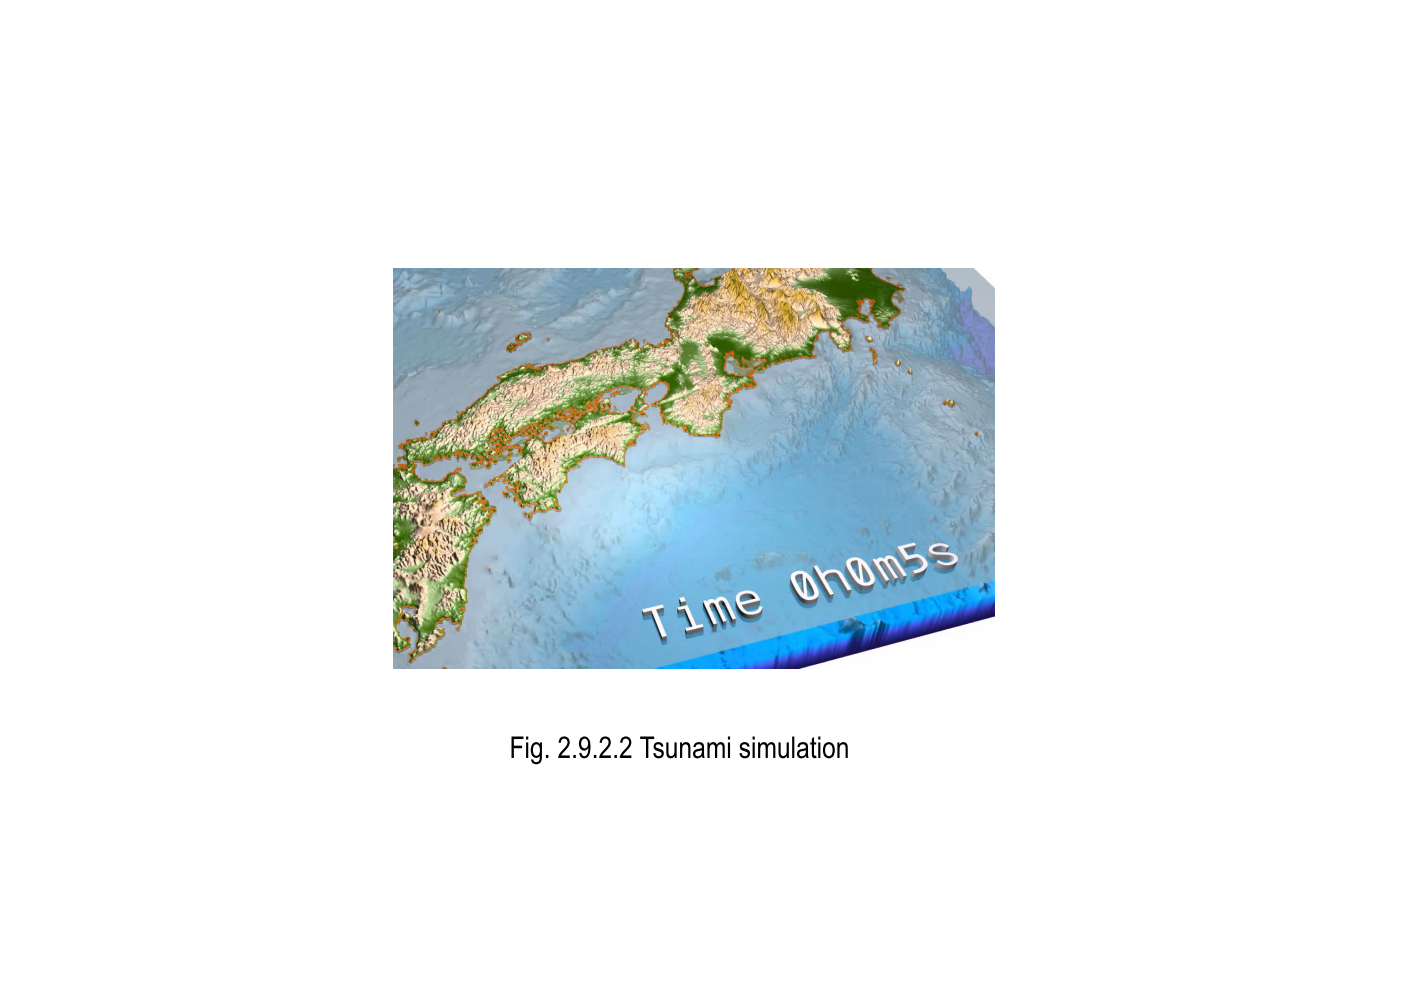 This Simulation Involves The Occurrence Of A Large Earthquake The Estimation Of The Ground Motion And Tsunami And The Results Will Be Used For Disaster